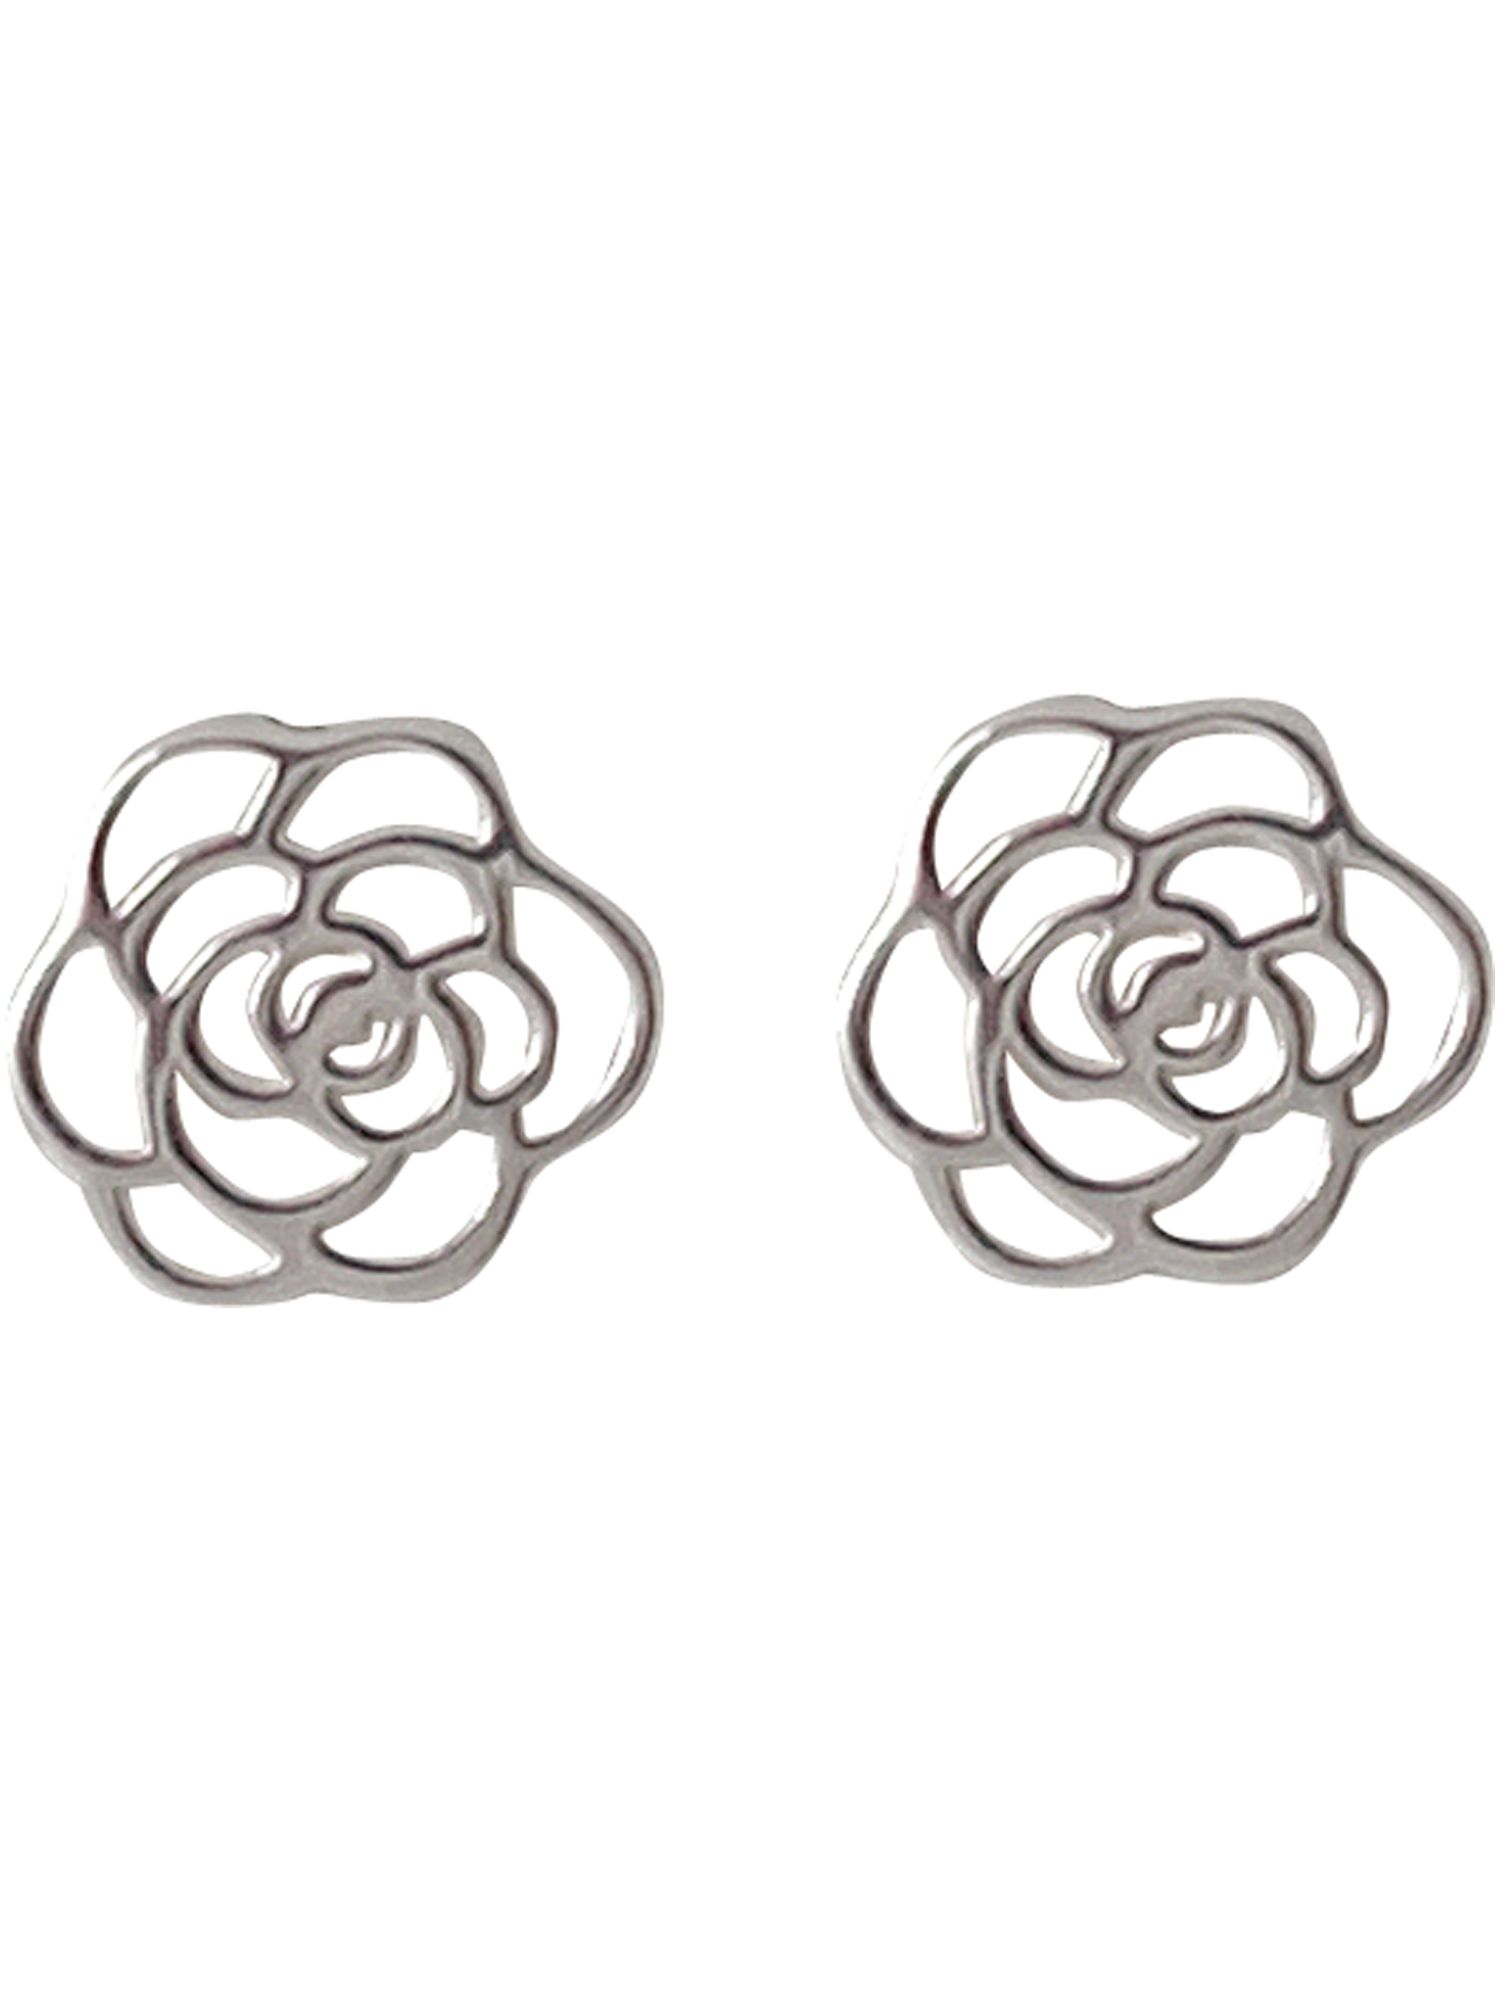 Paul Kennedy Sterling silver flower stud earrings product image